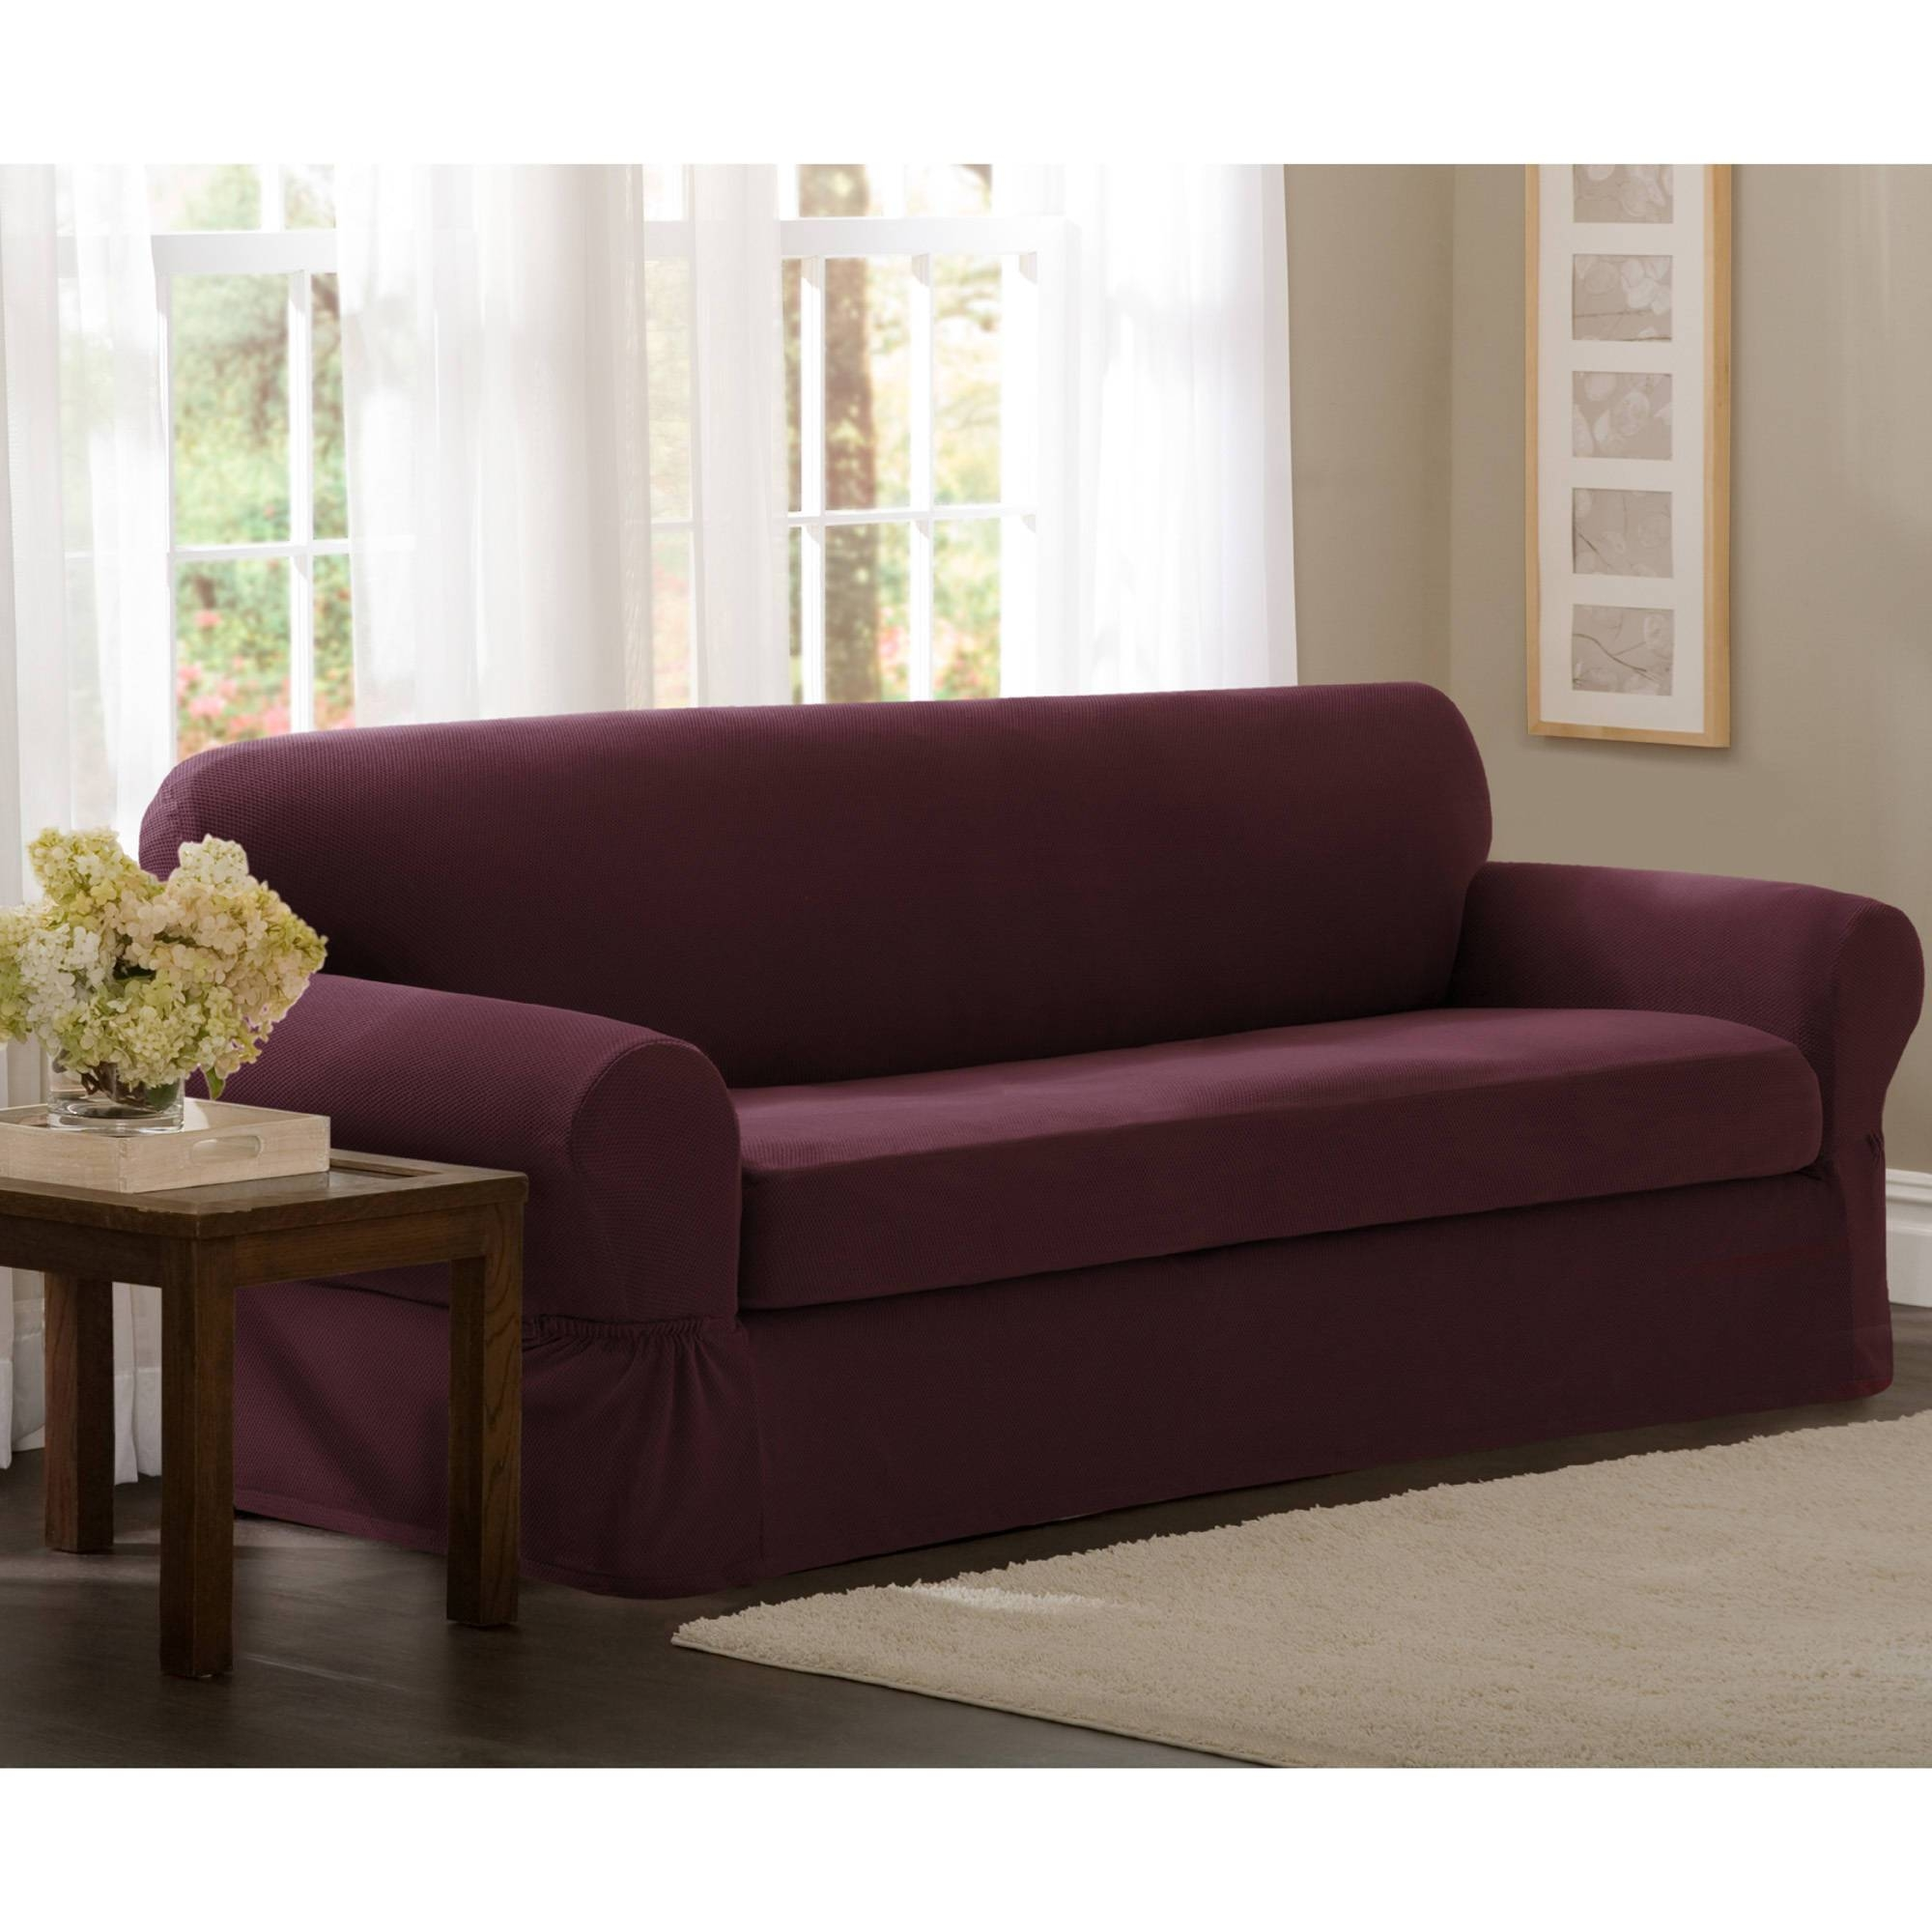 Maytex Stretch Pixel 2-Piece Loveseat Slipcover - Walmart with 2 Piece Sofas (Image 10 of 15)